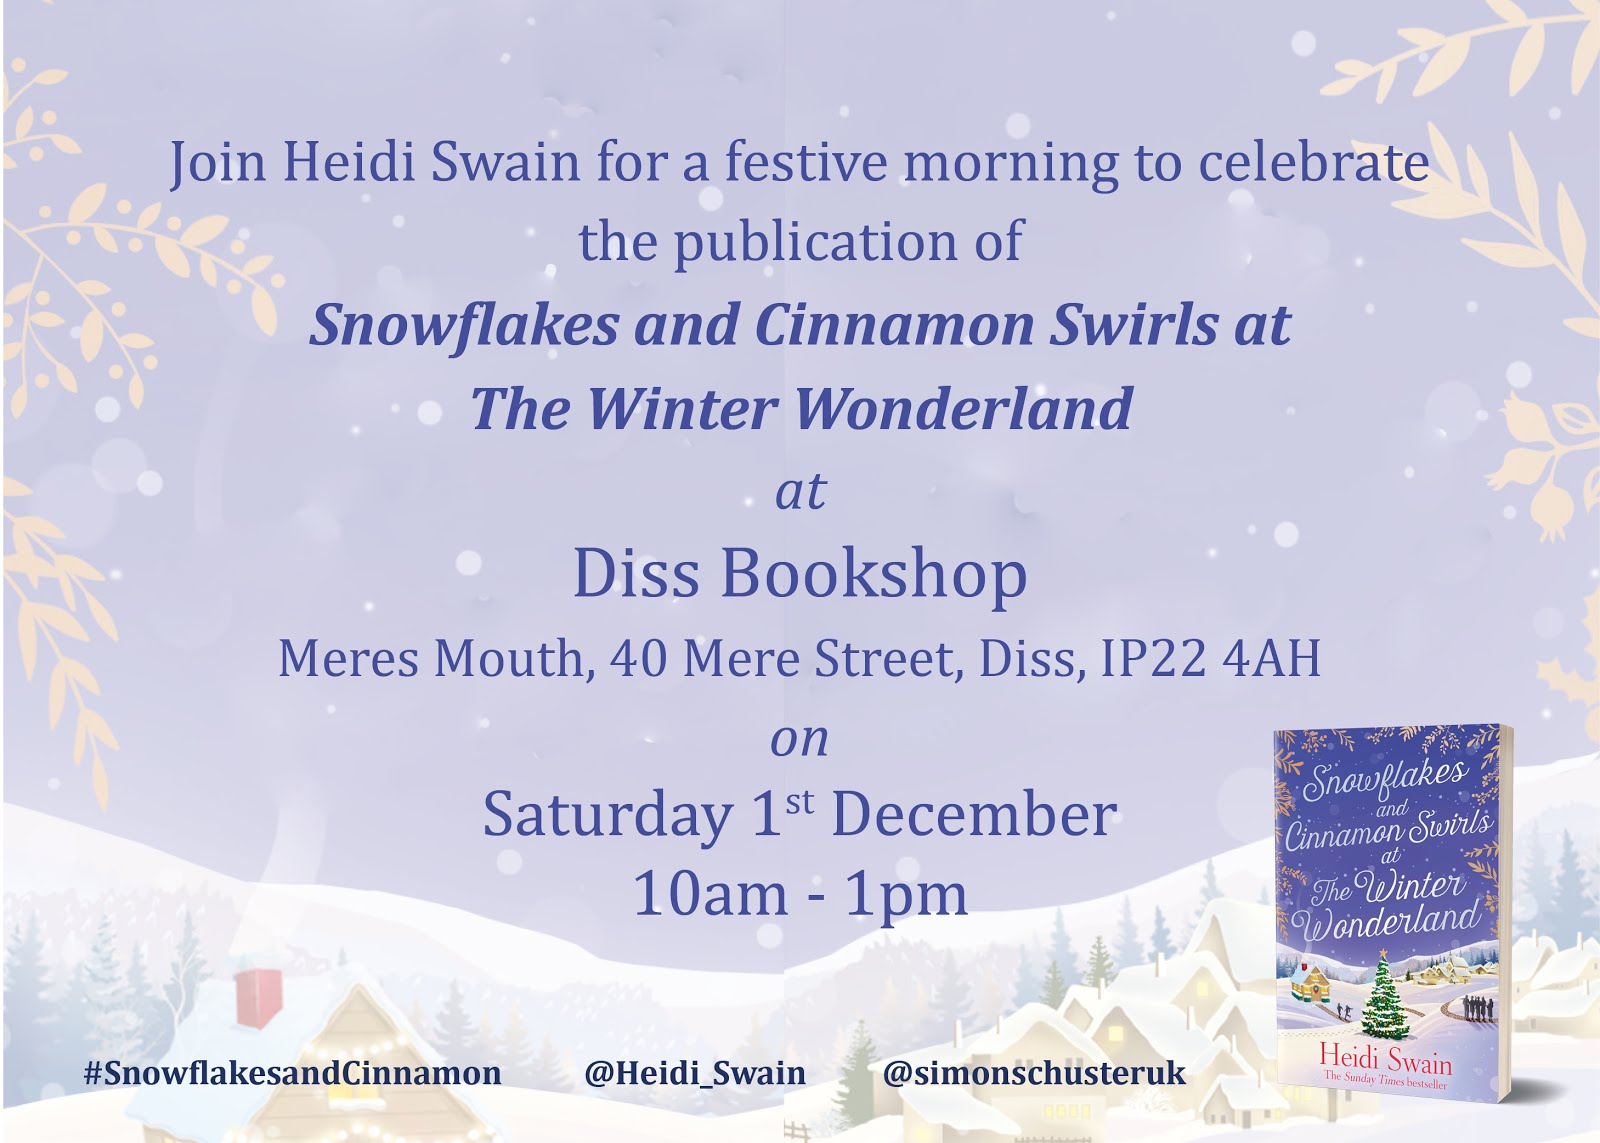 Snowflakes and Cinnamon Swirls signing at Diss Bookshop